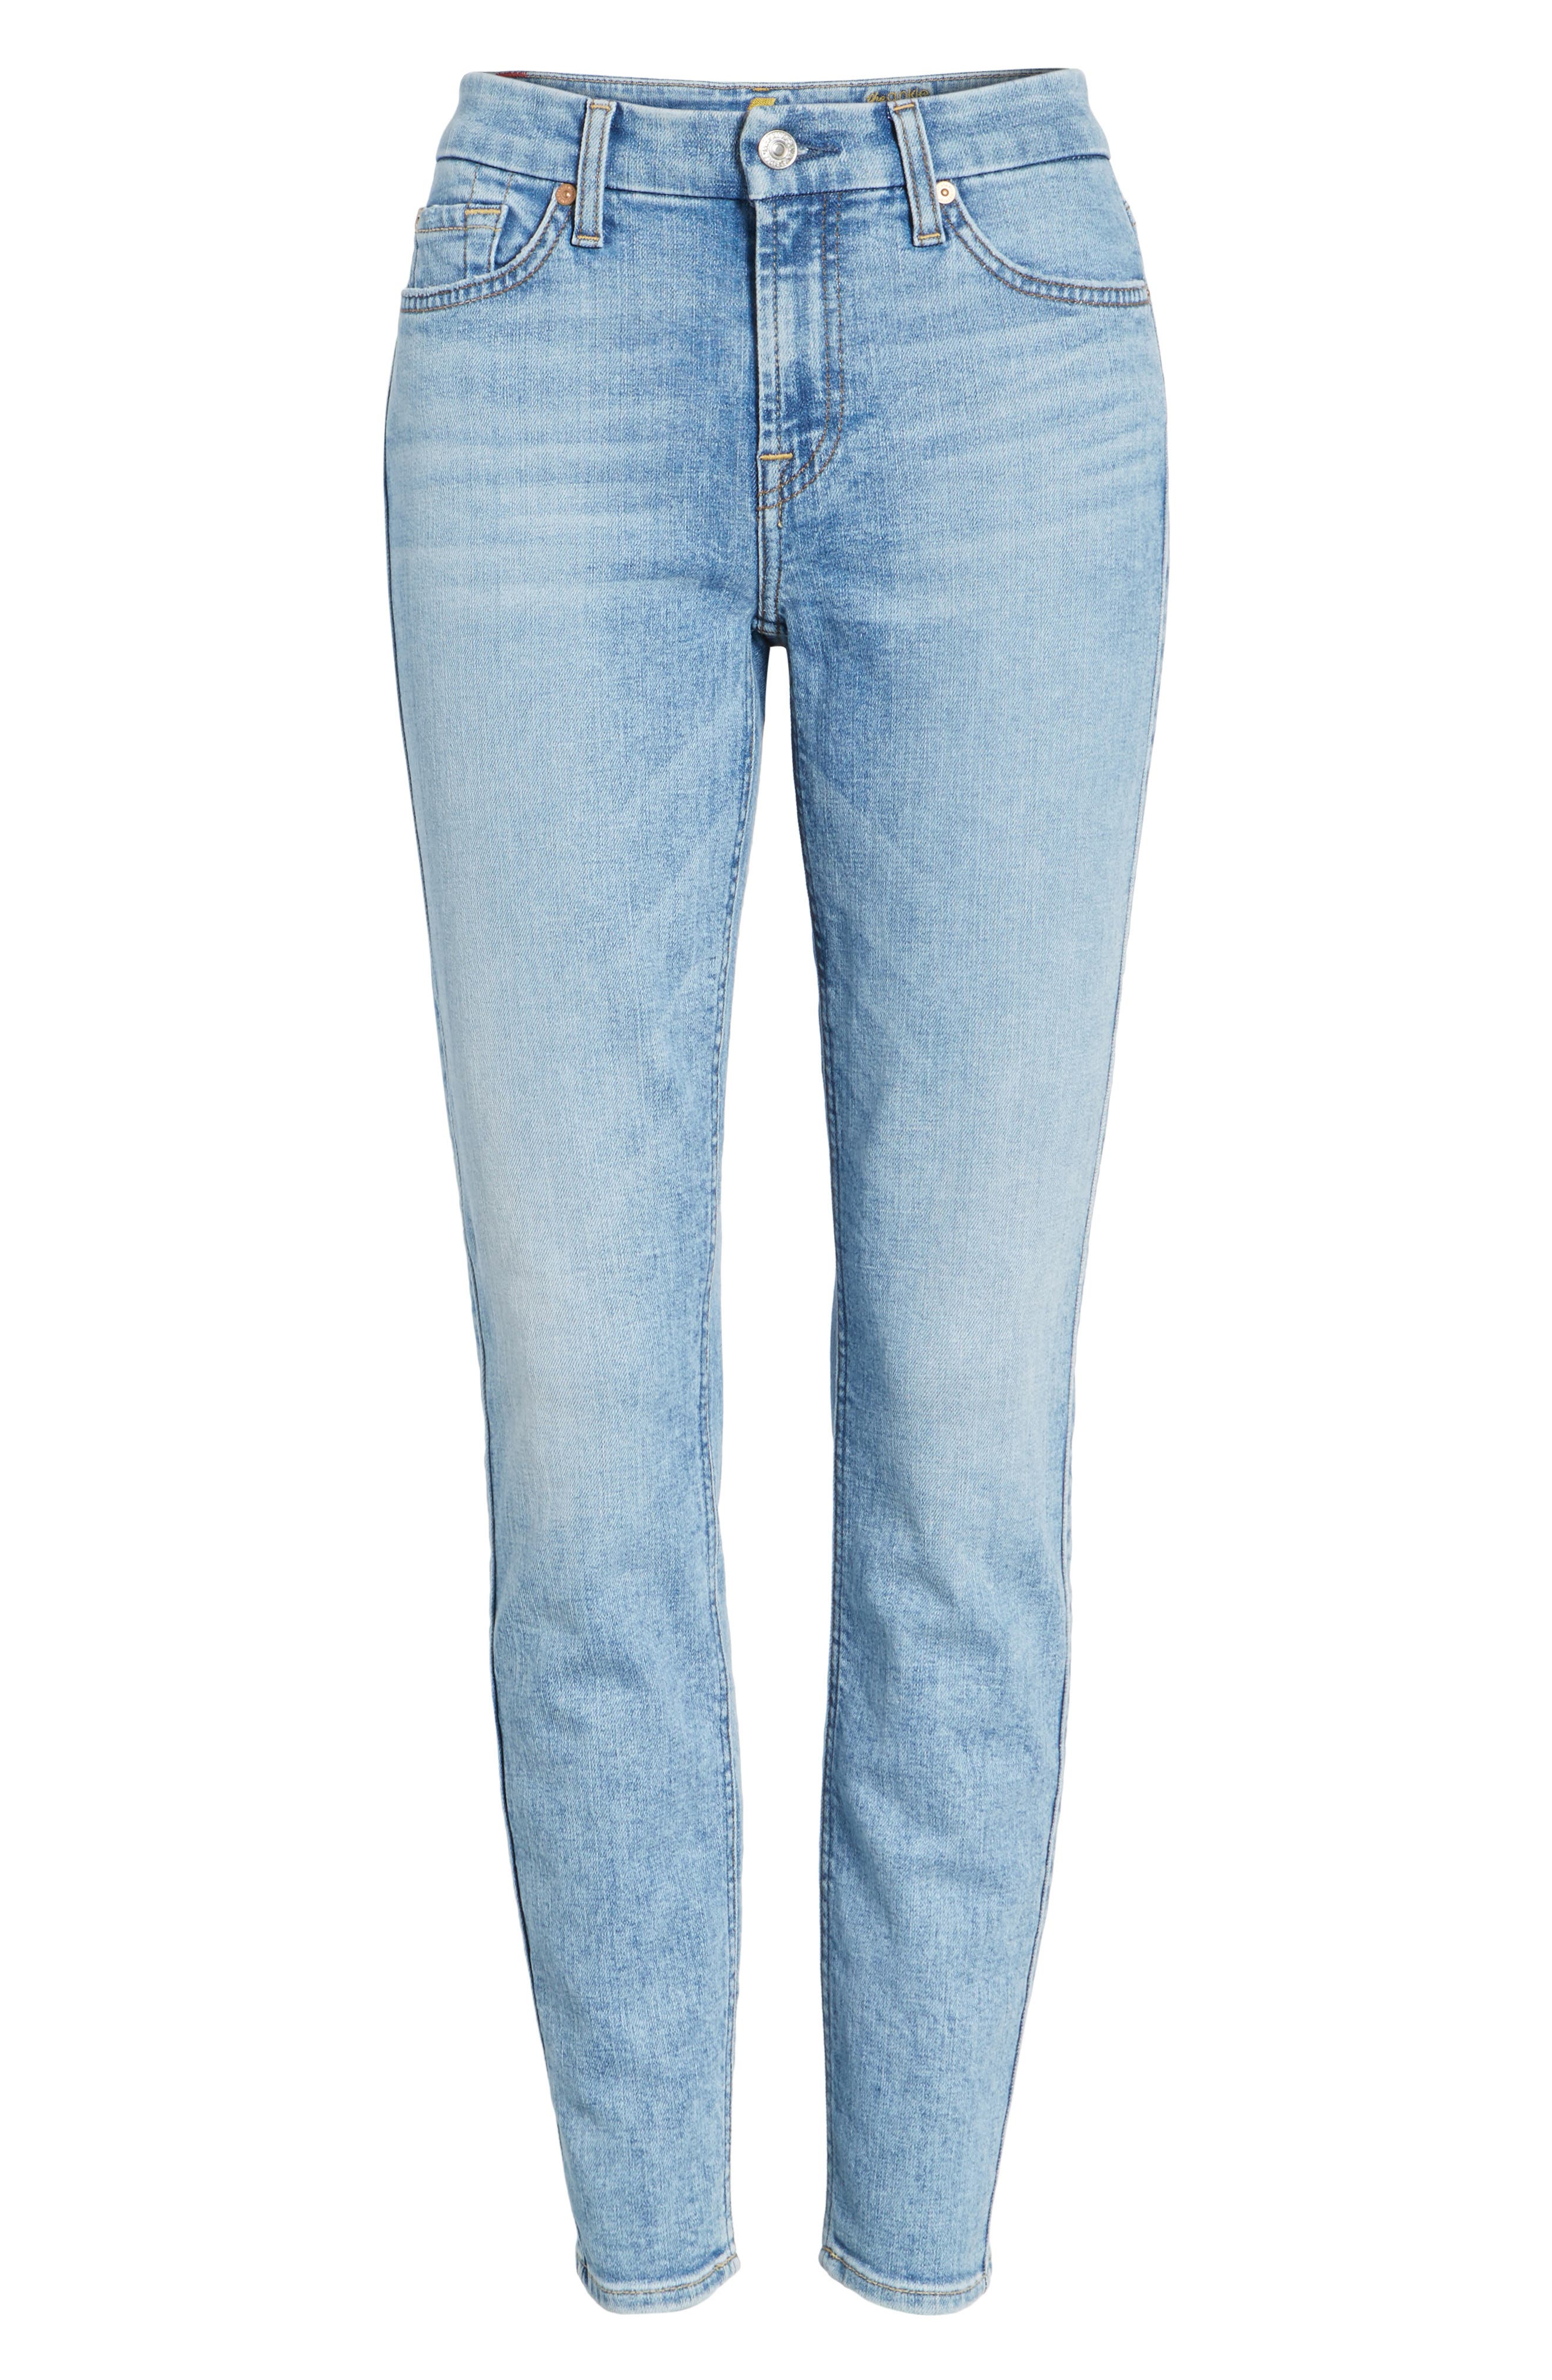 Embellished & Ripped Ankle Skinny Jeans,                             Alternate thumbnail 6, color,                             405